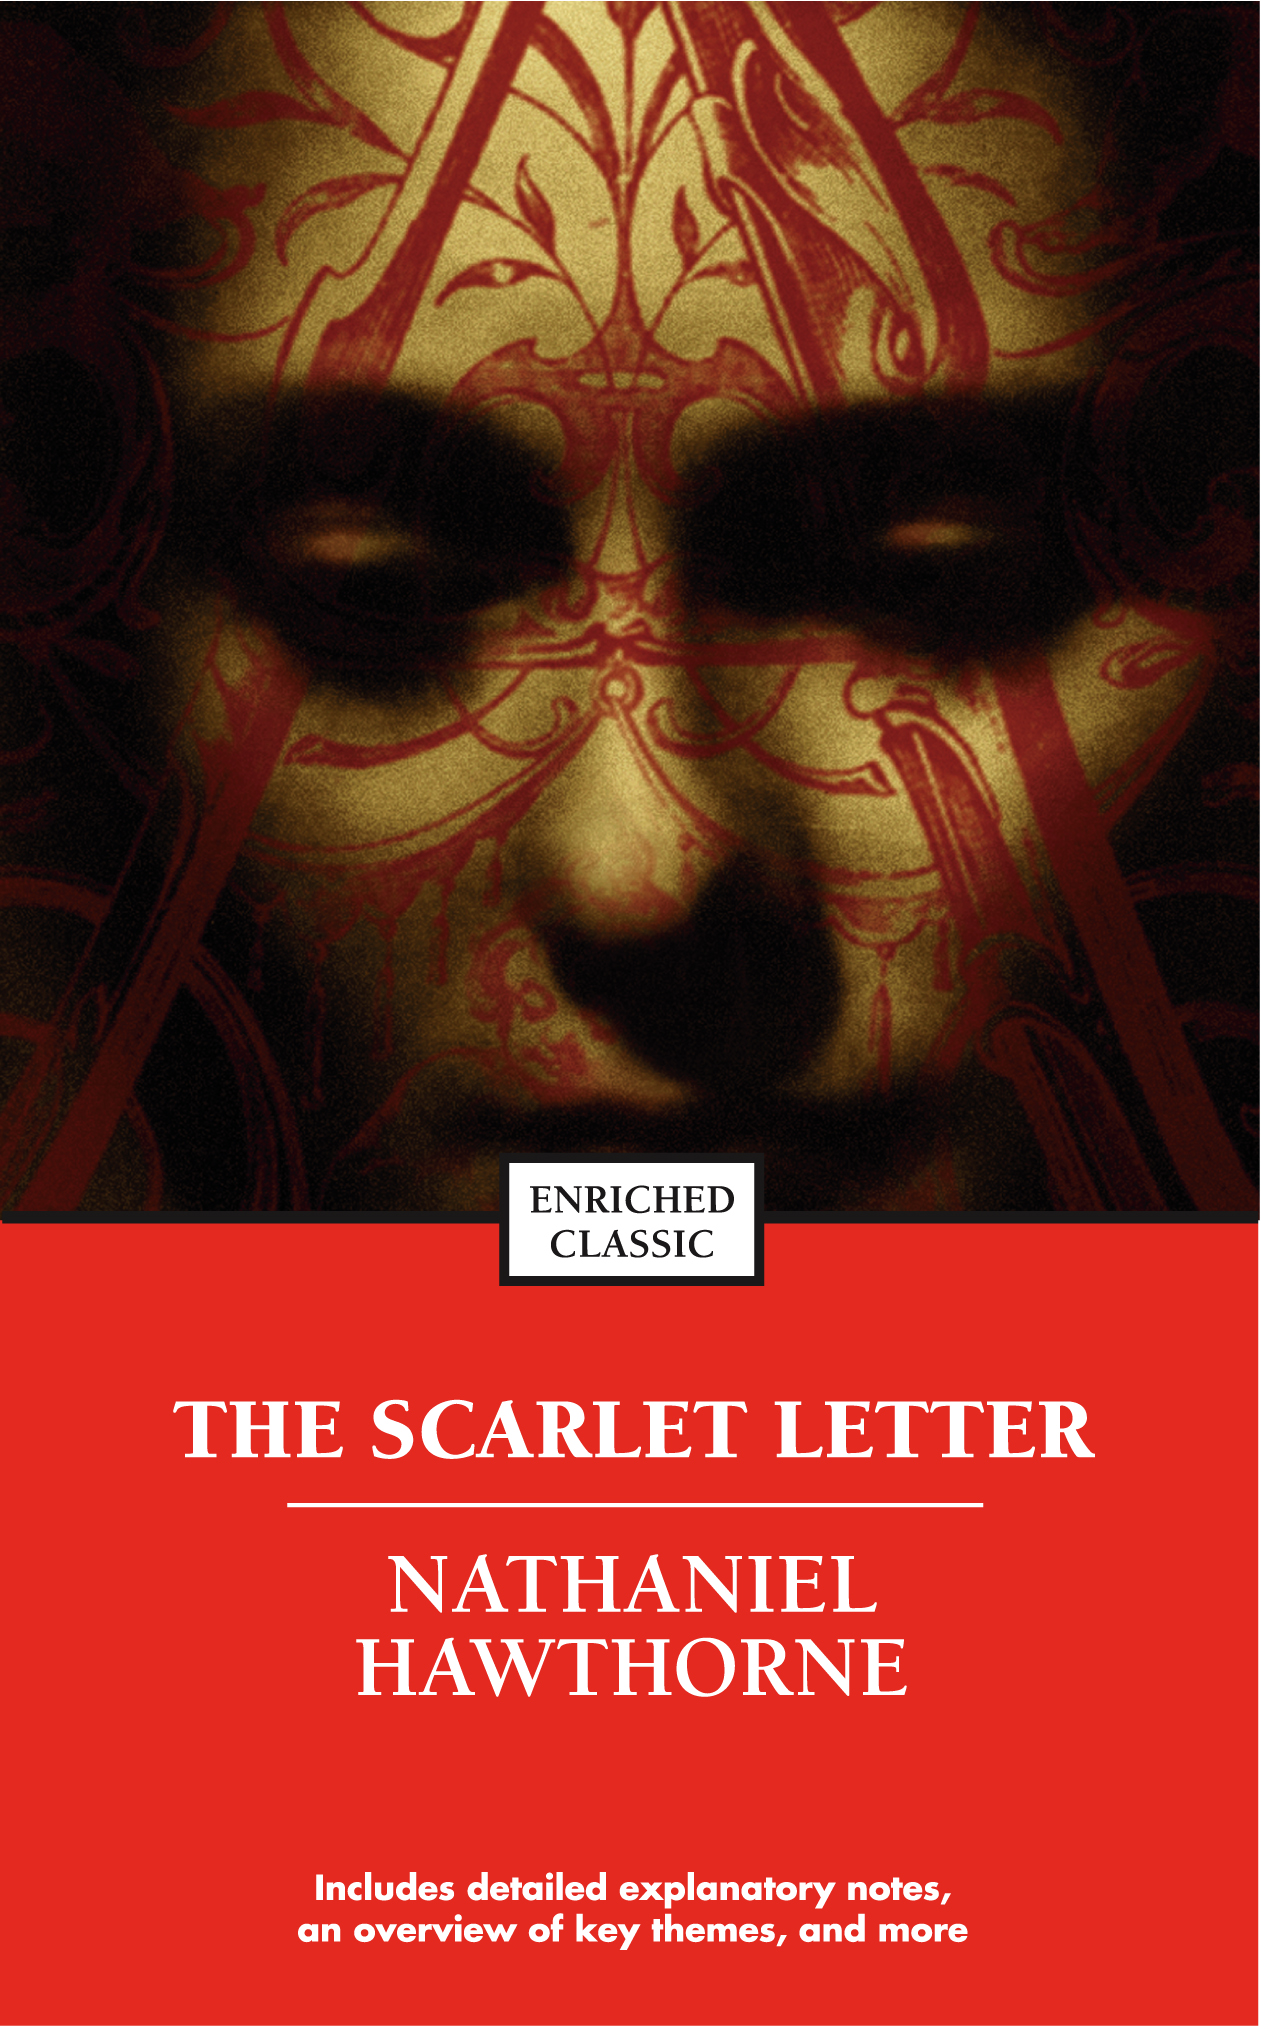 Image result for the scarlet letter